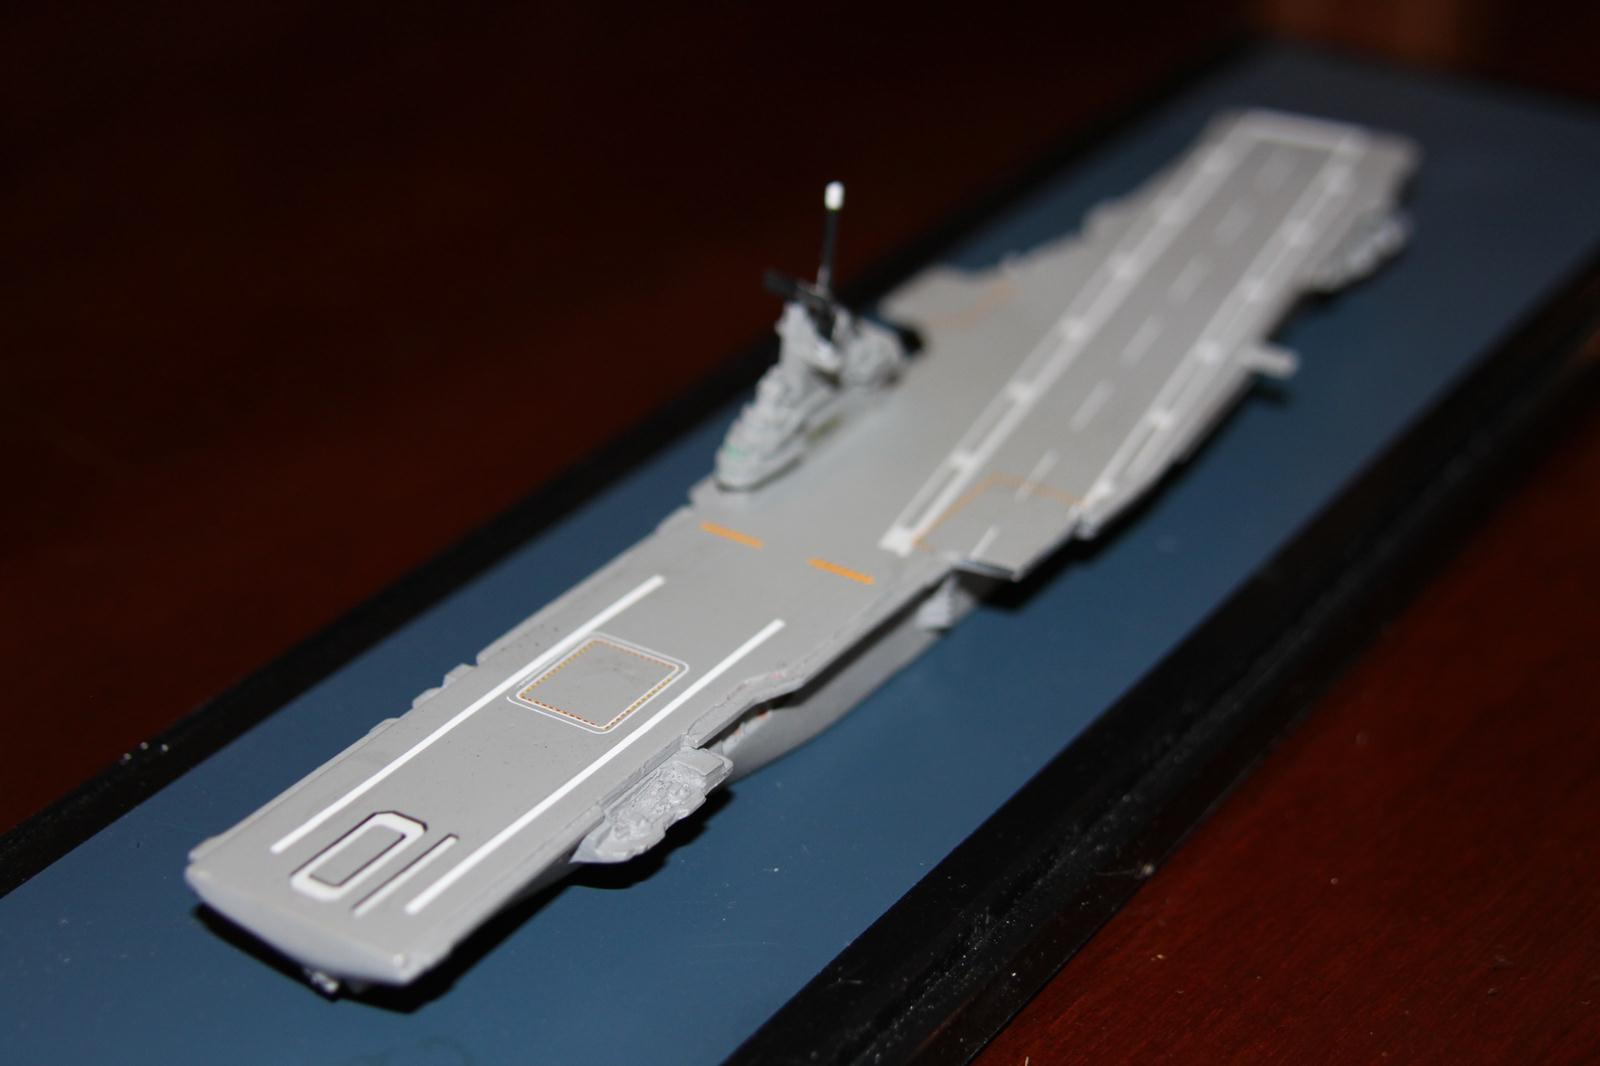 Aircraft carrier models large scale - Here Are Some Interesting Links